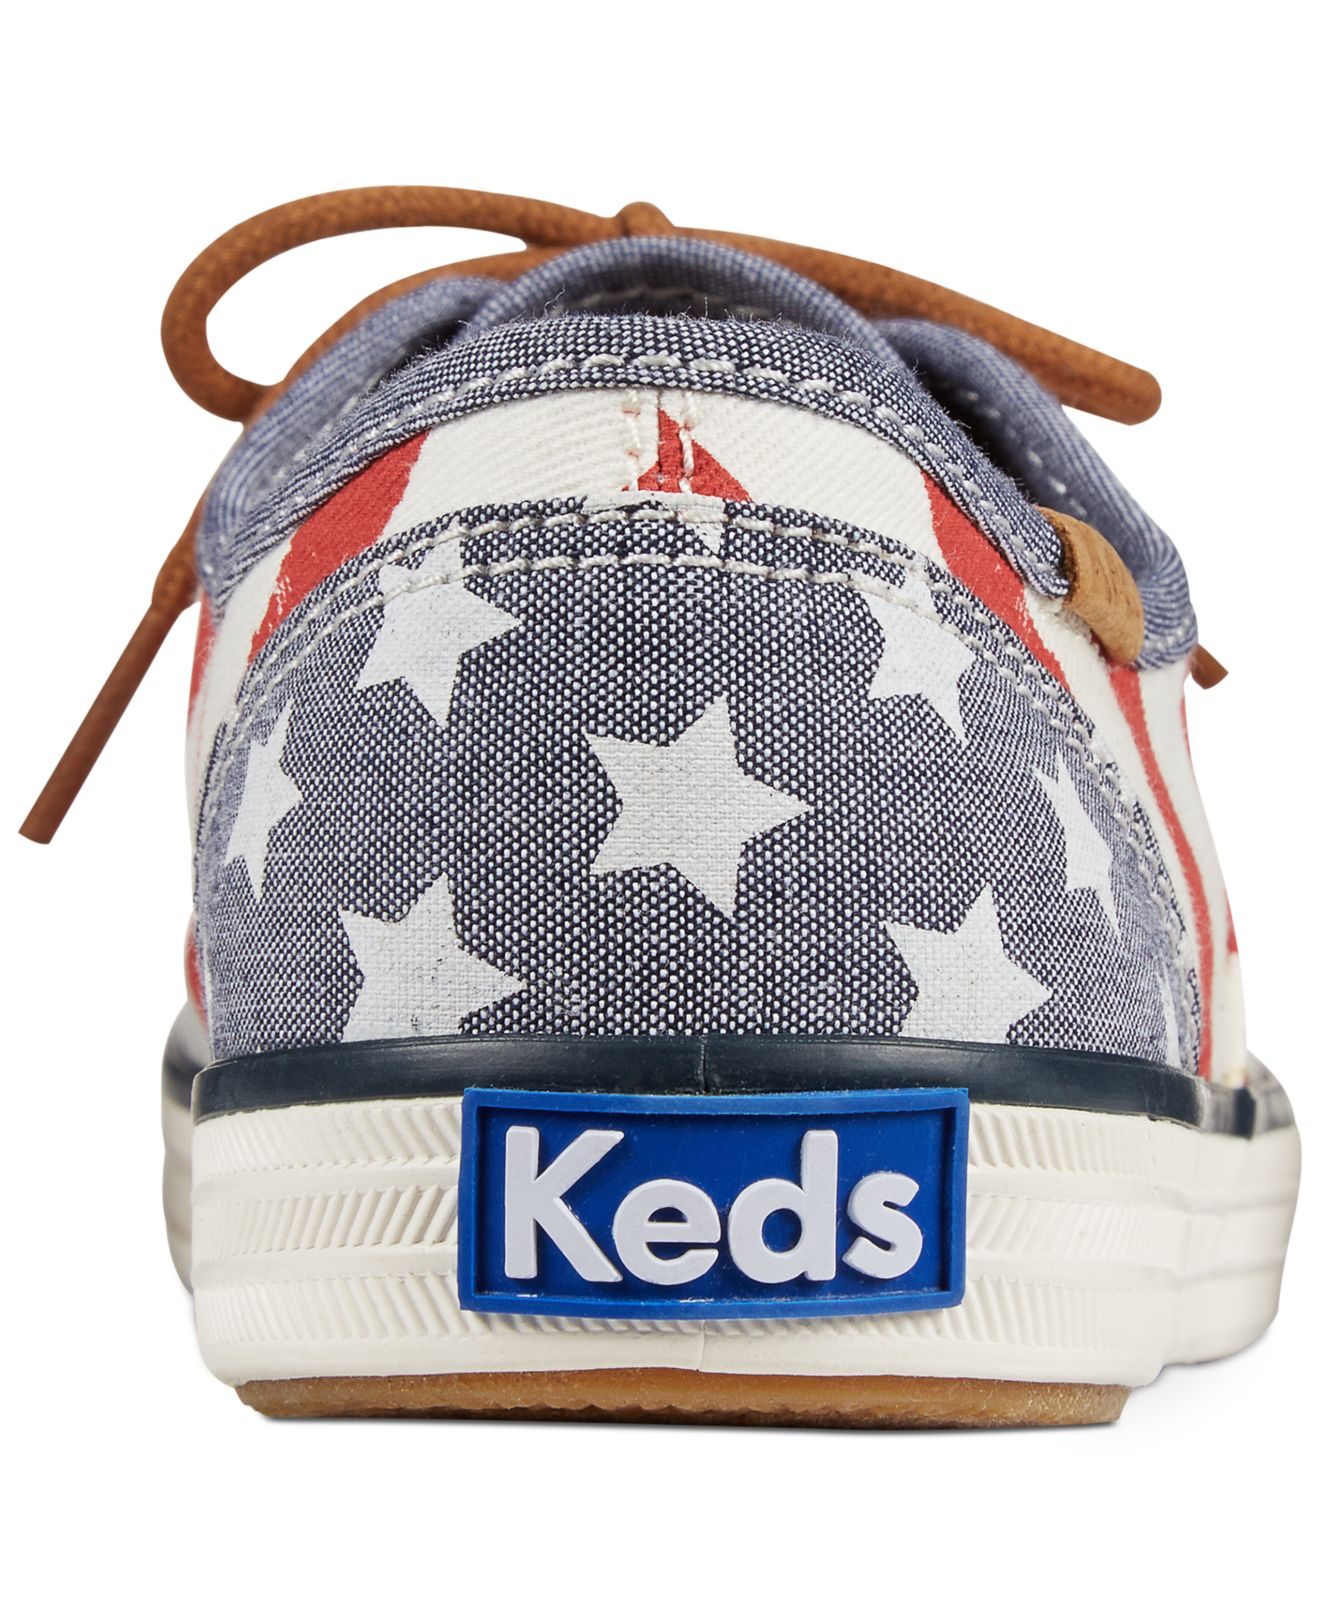 d3b58a705e3 Lyst - Keds Women s Champion Patriotic Sneakers in Red